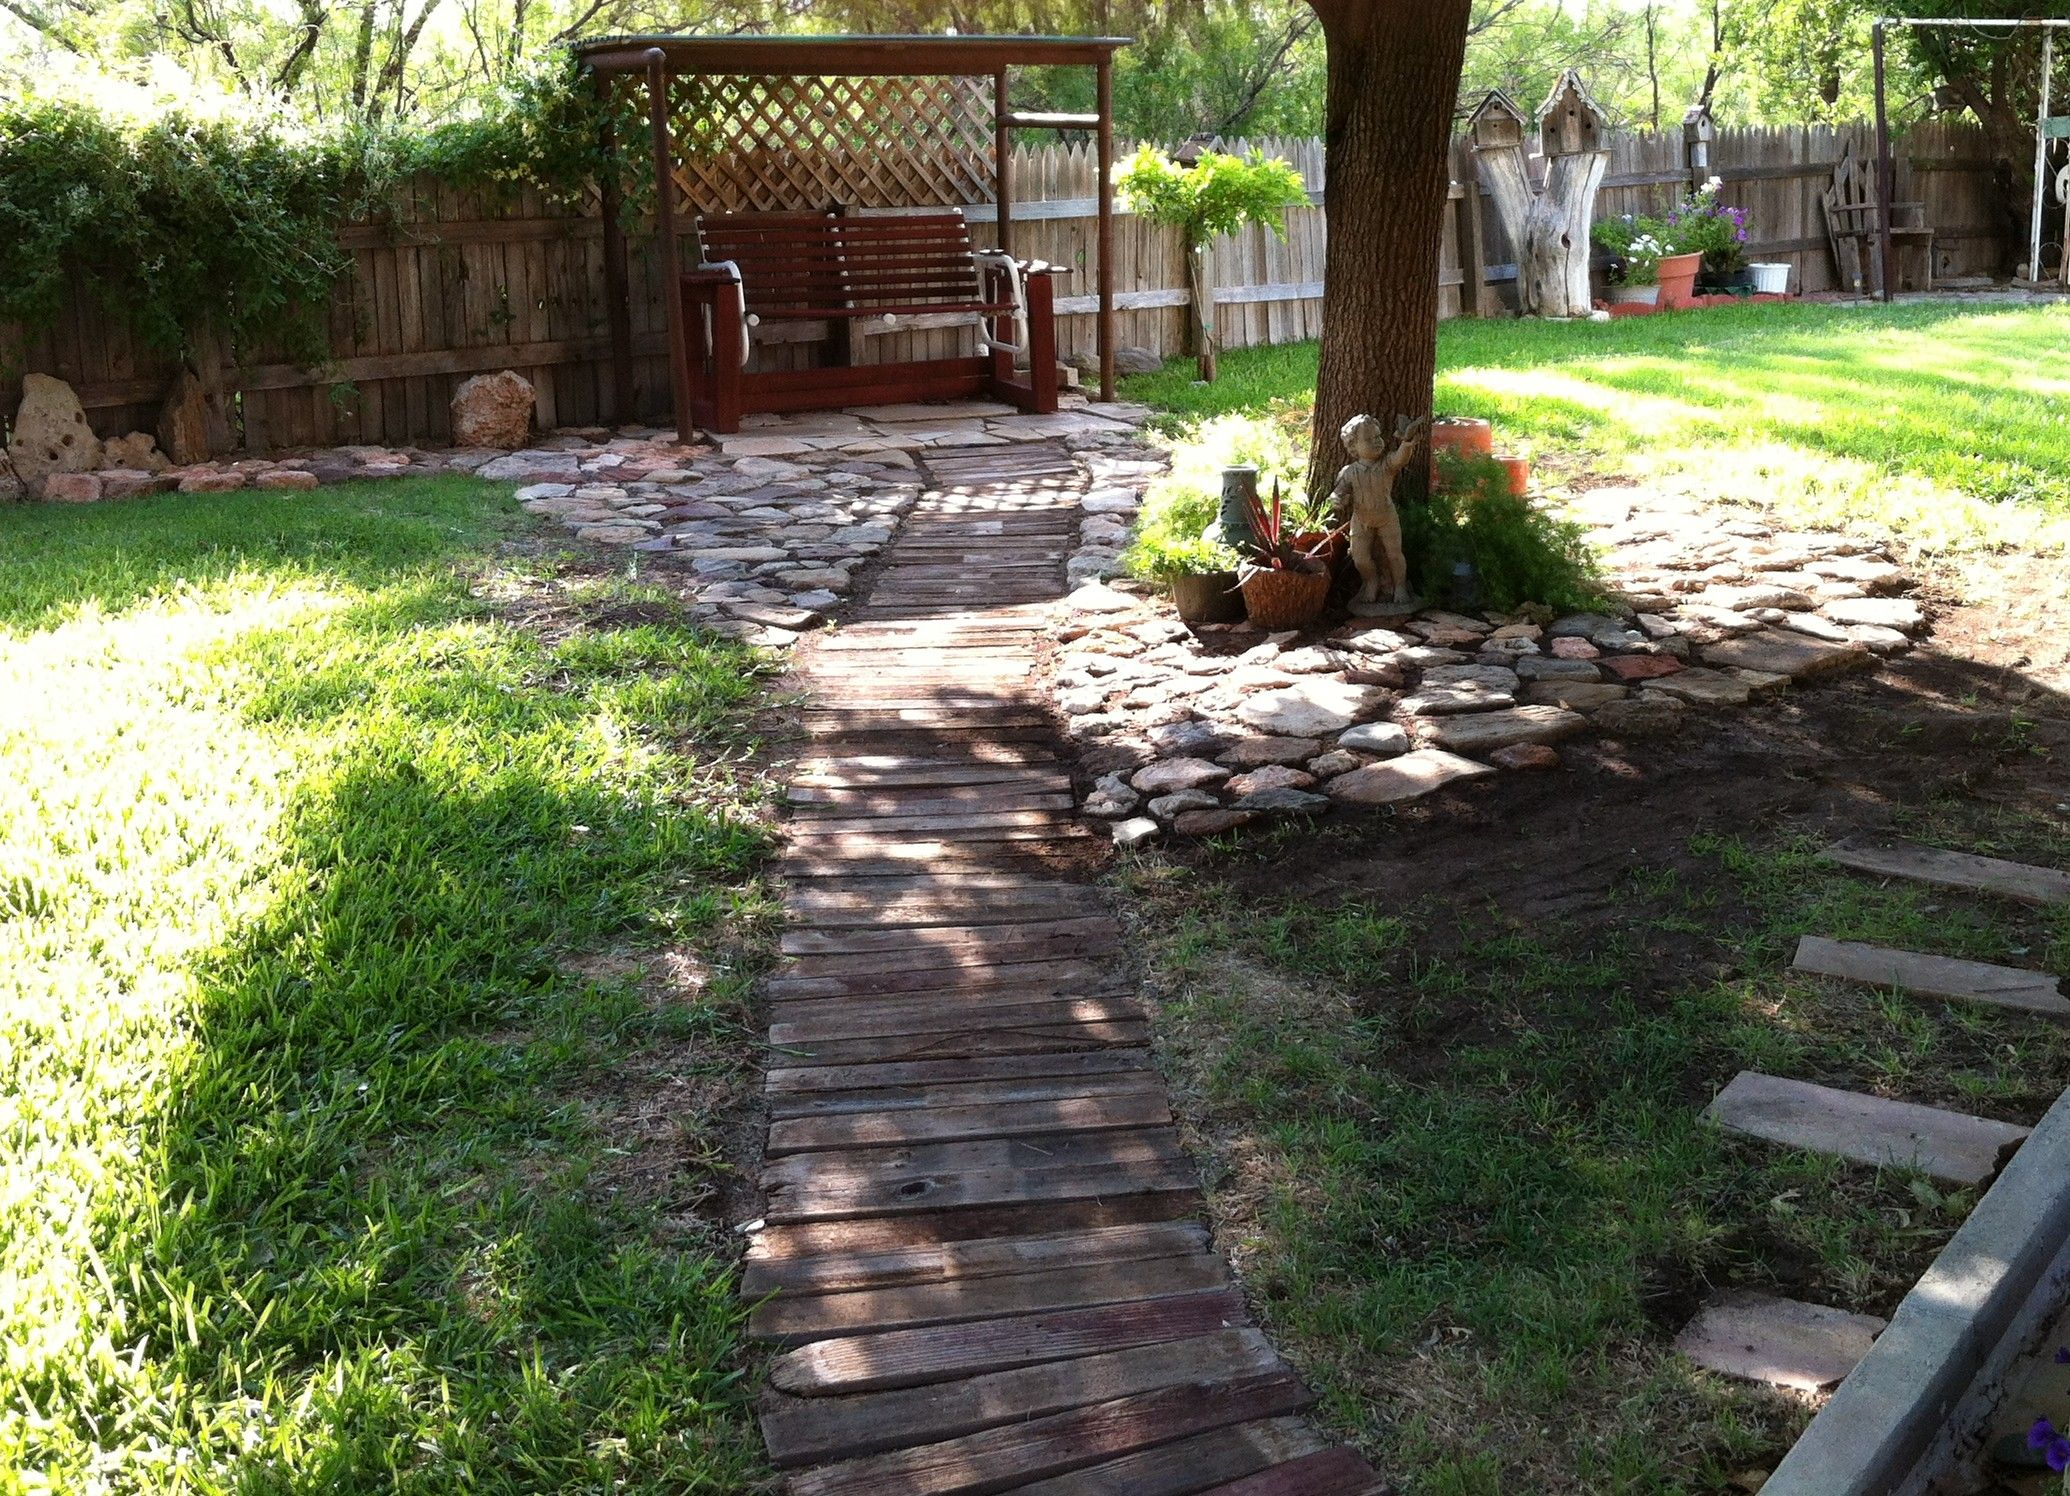 This is my wooden walkway in my backyard